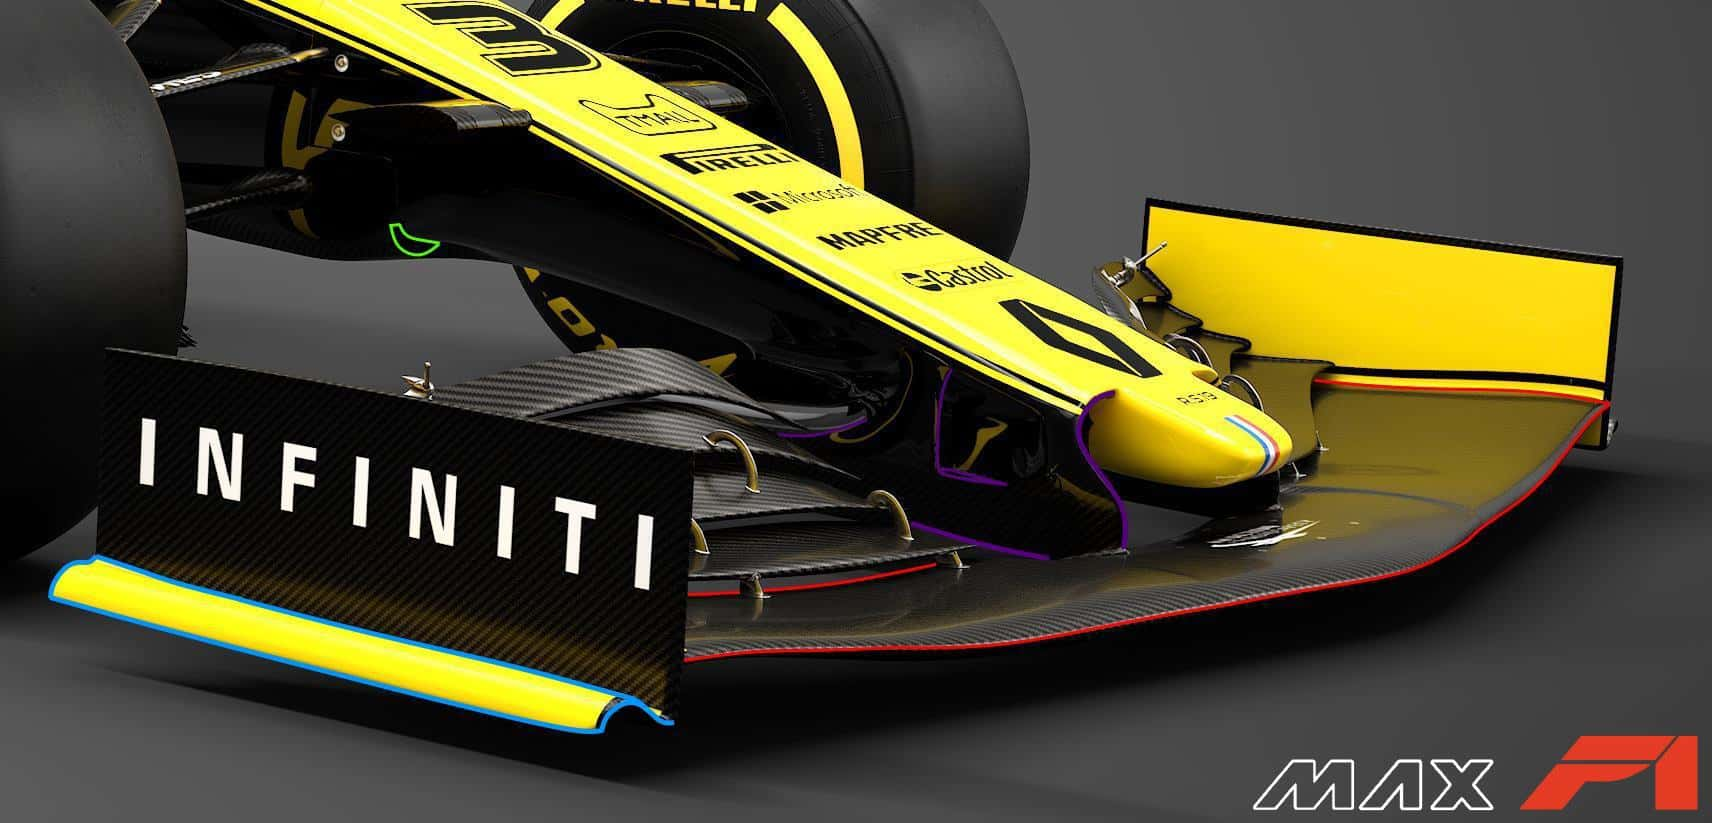 Technical analysis – 2019 F1 Renault R S 19